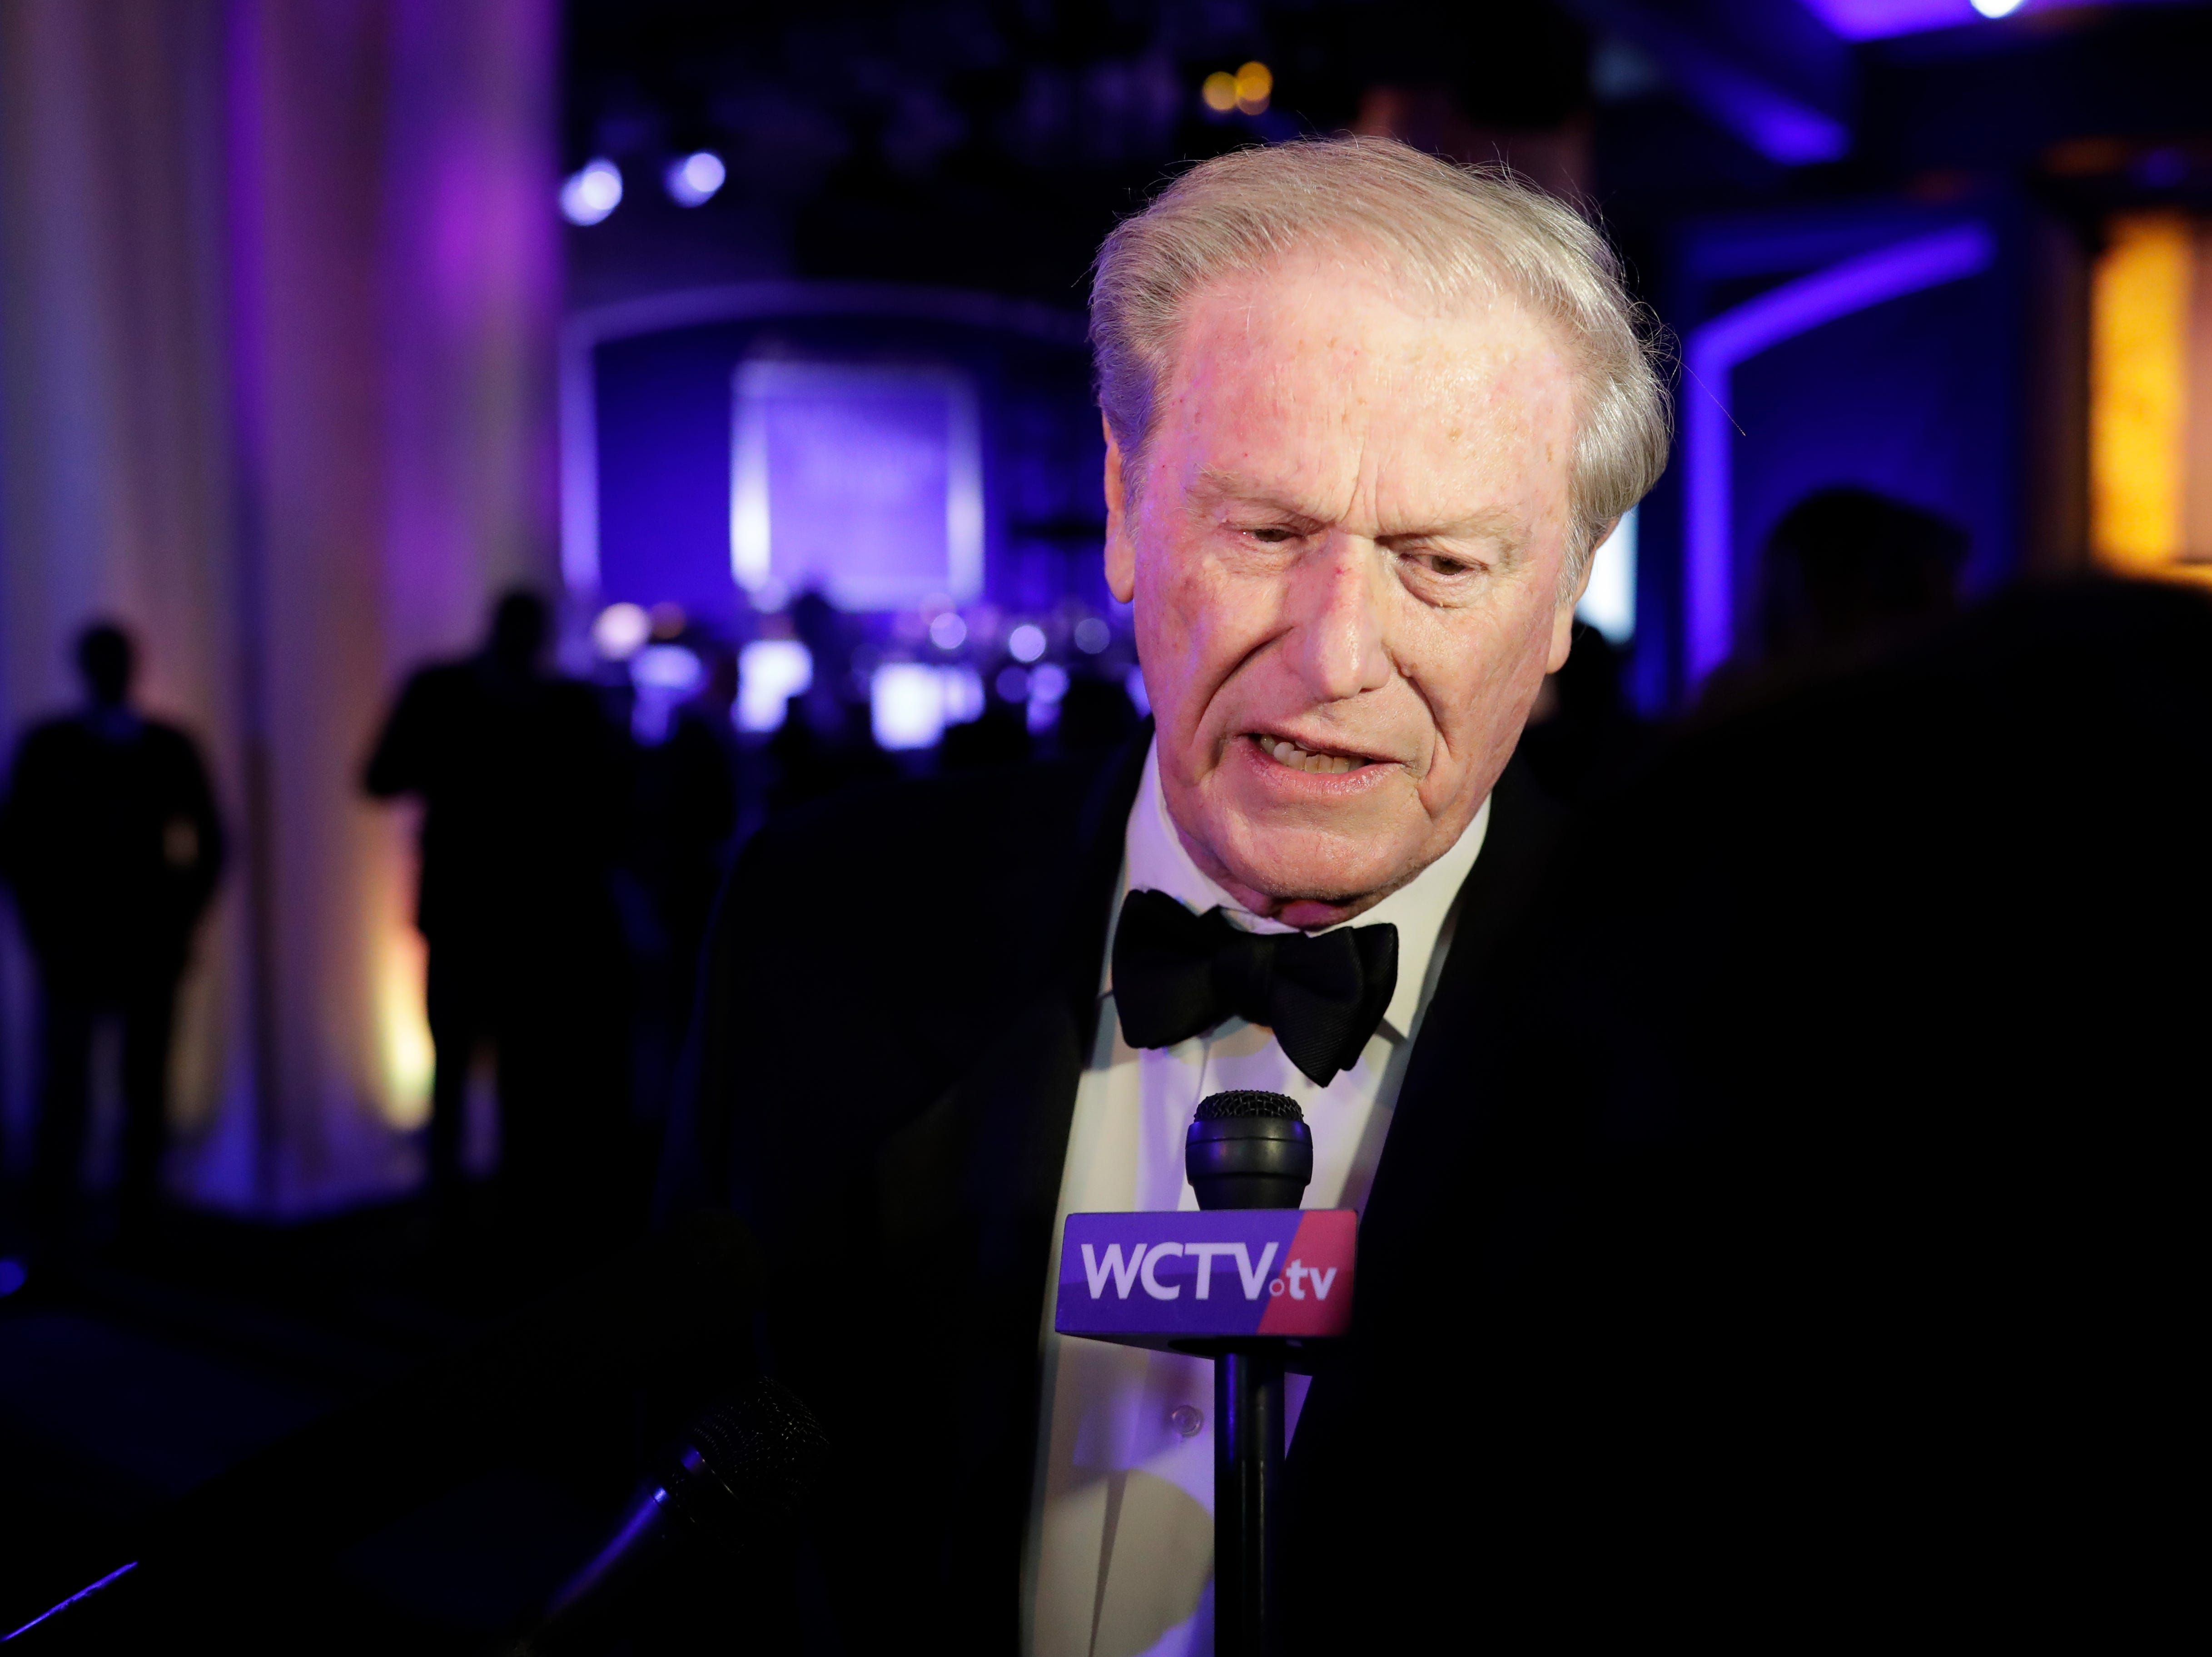 Hundreds of guests from all over Florida attend Florida's 46th Governor's Inaugural Ball at the Tucker Civic Center, Tuesday, Jan. 8, 2019. Florida State University President John Thrasher answers questions from the media.